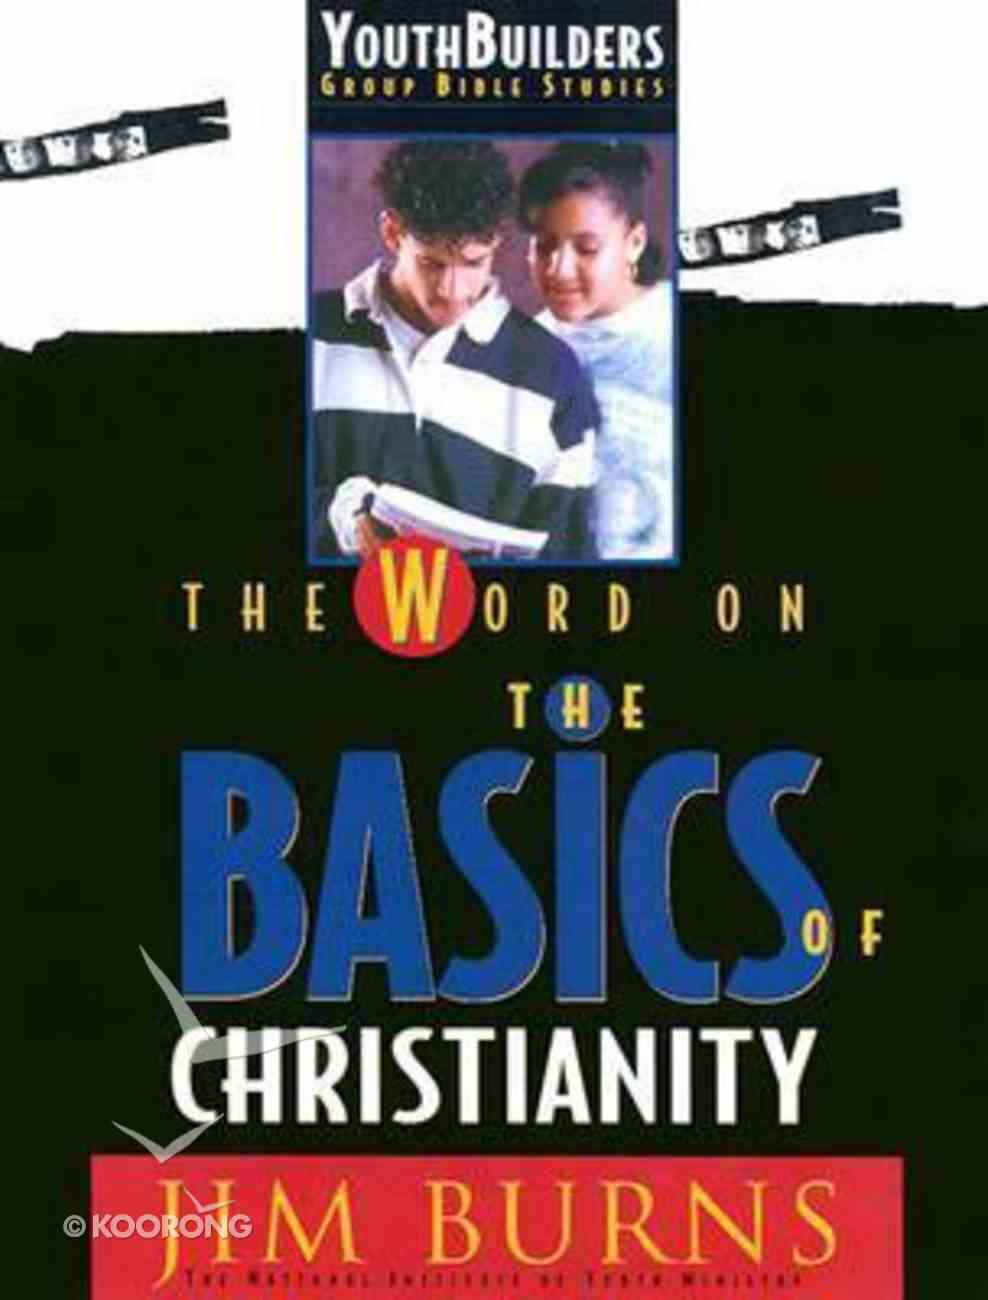 Youth Builders: Word on Christian Basics (Youth Builders Bible Studies Series) Paperback